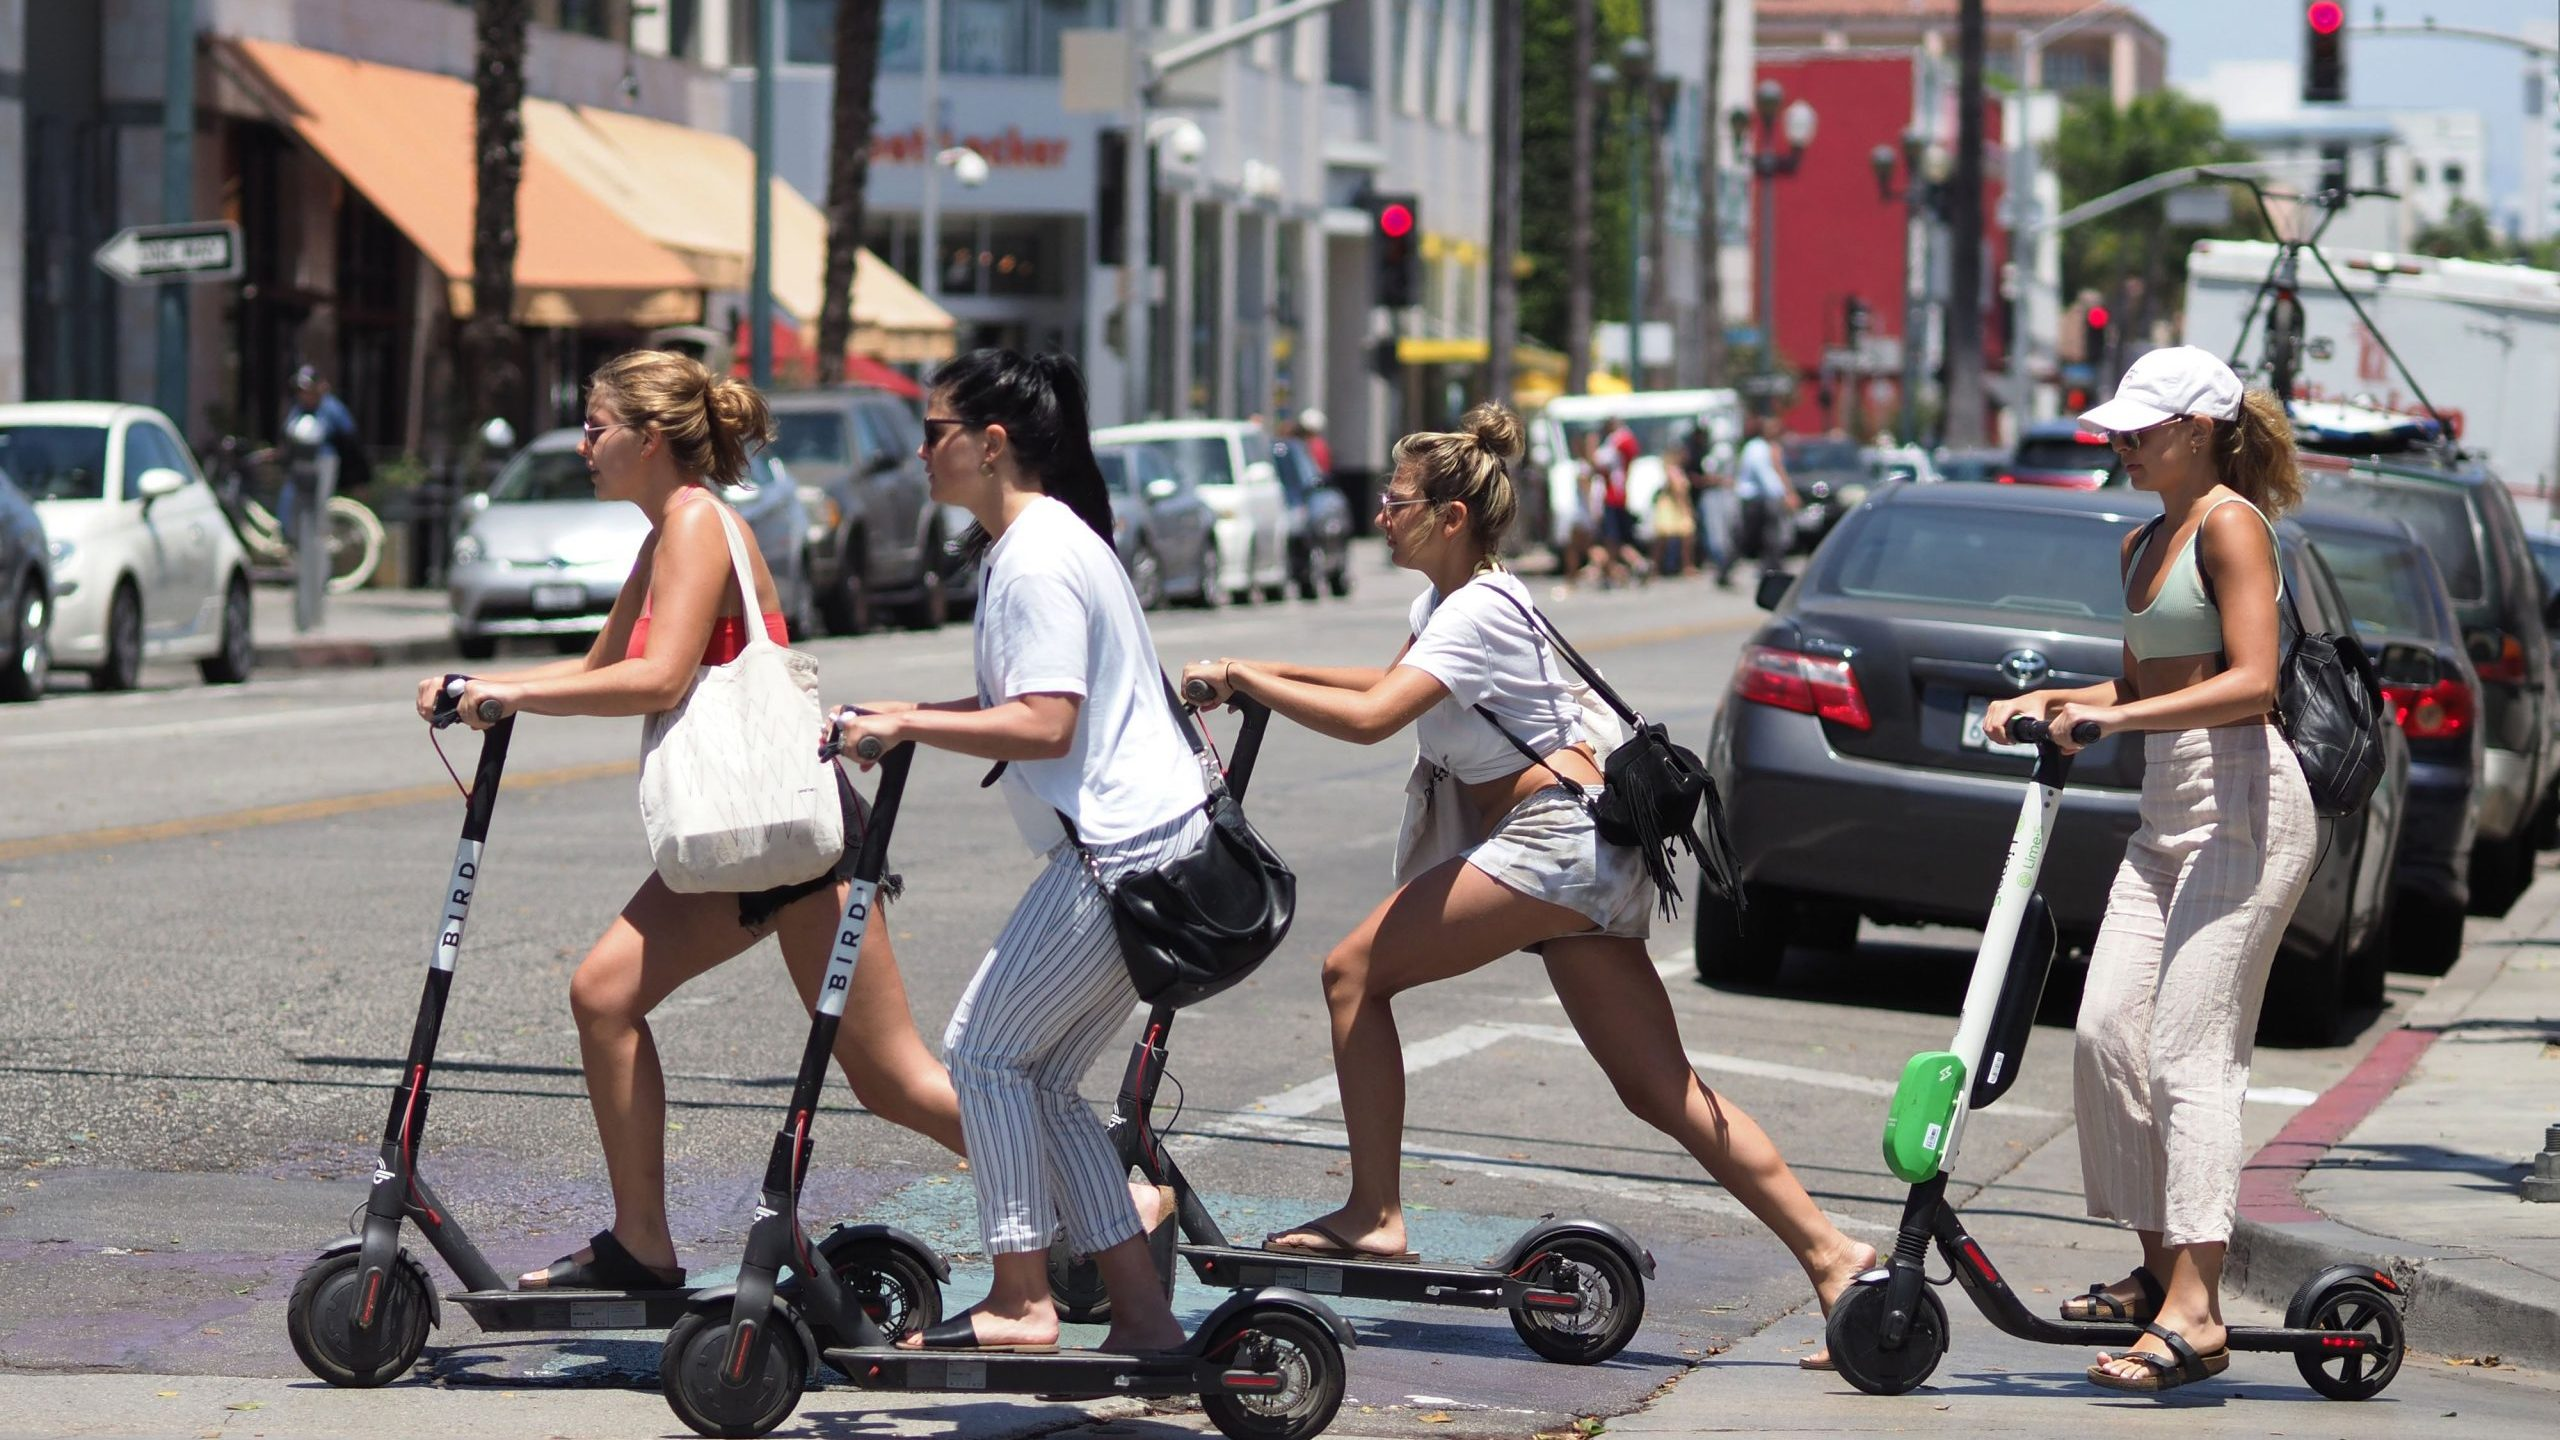 Young women ride electric scooters in Santa Monica on July 13, 2018. (Credit: Robyn Beck/AFP via Getty Images)